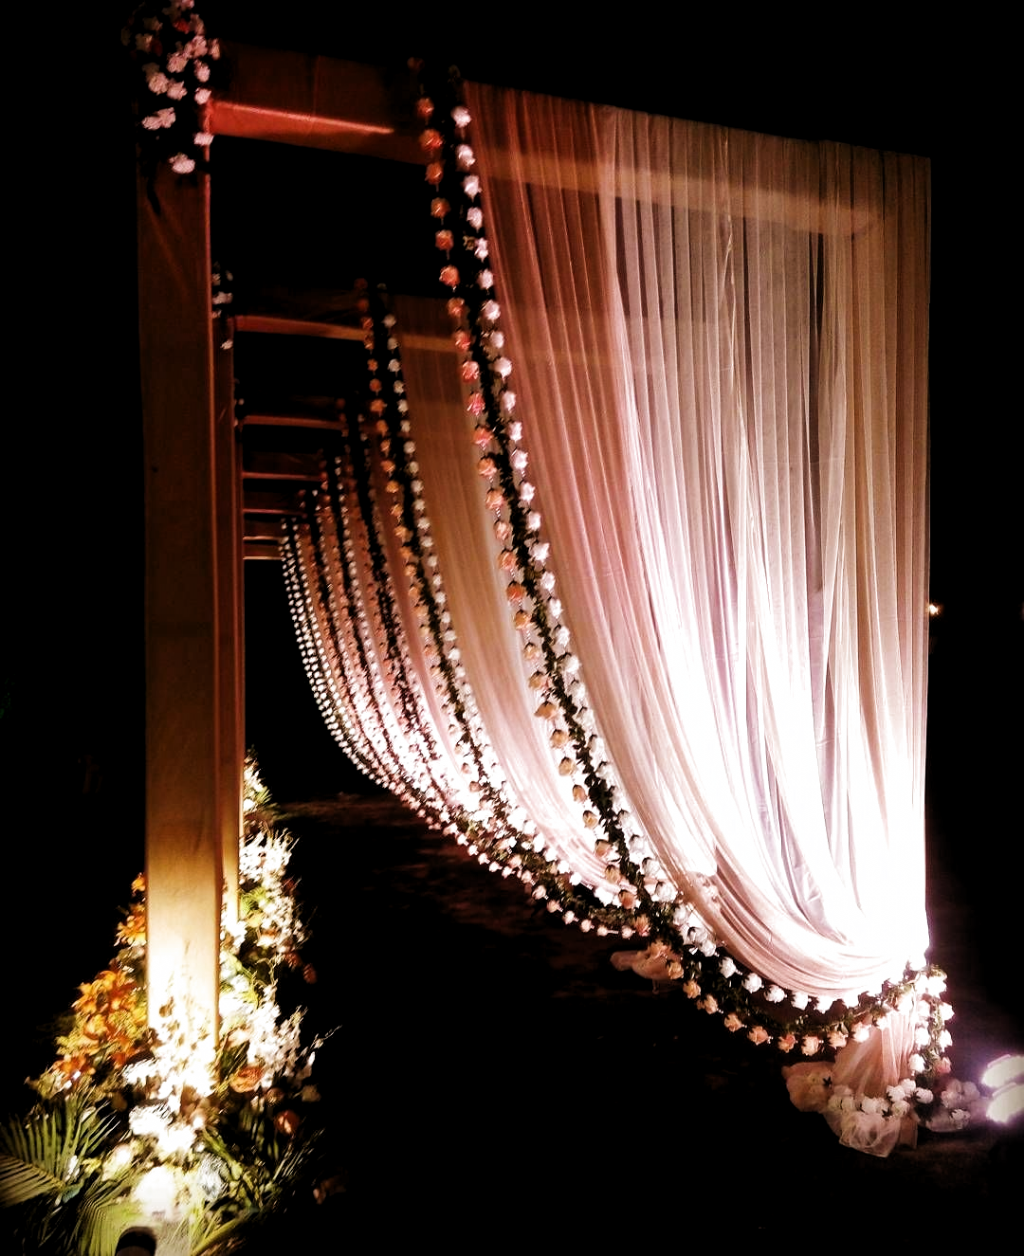 13 Wedding Entrance Decor Ideas That You Need To Save And Show to Your Decorator! - ShaadiWish #shaadiwish #indianwedding #decor #decorideas #decoration #decoratingideas #decortrends2019